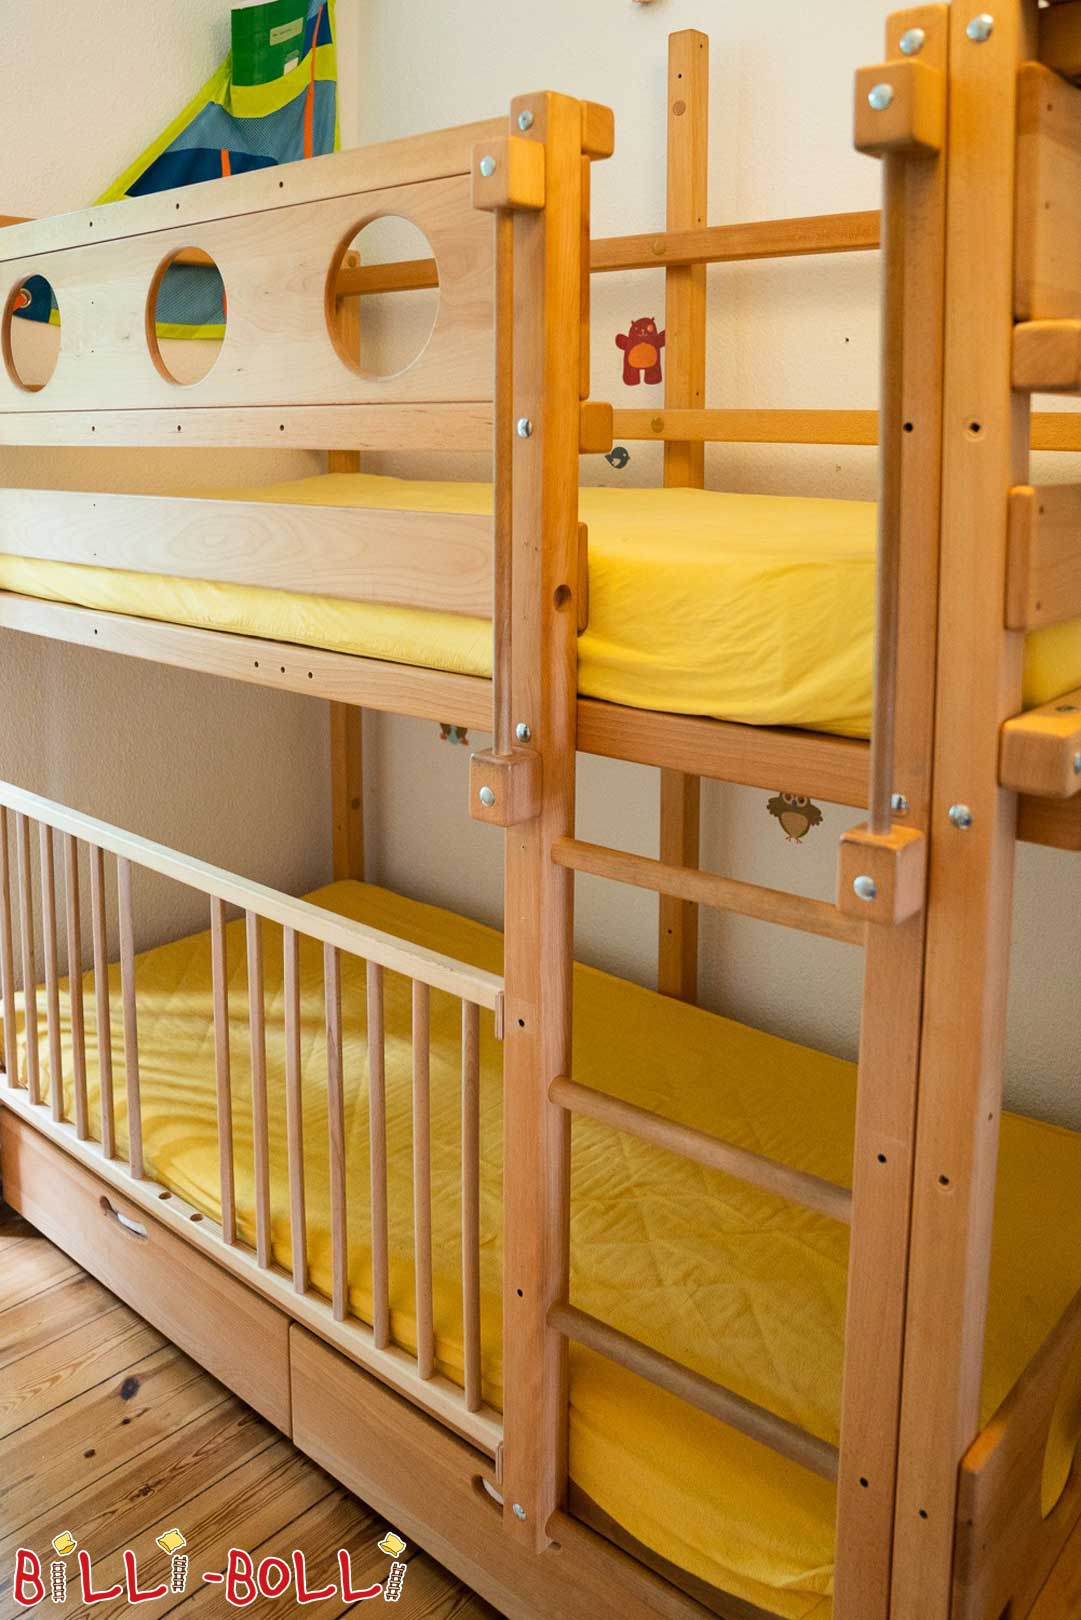 Bunk bed incl. baby twins (second hand loft bed)